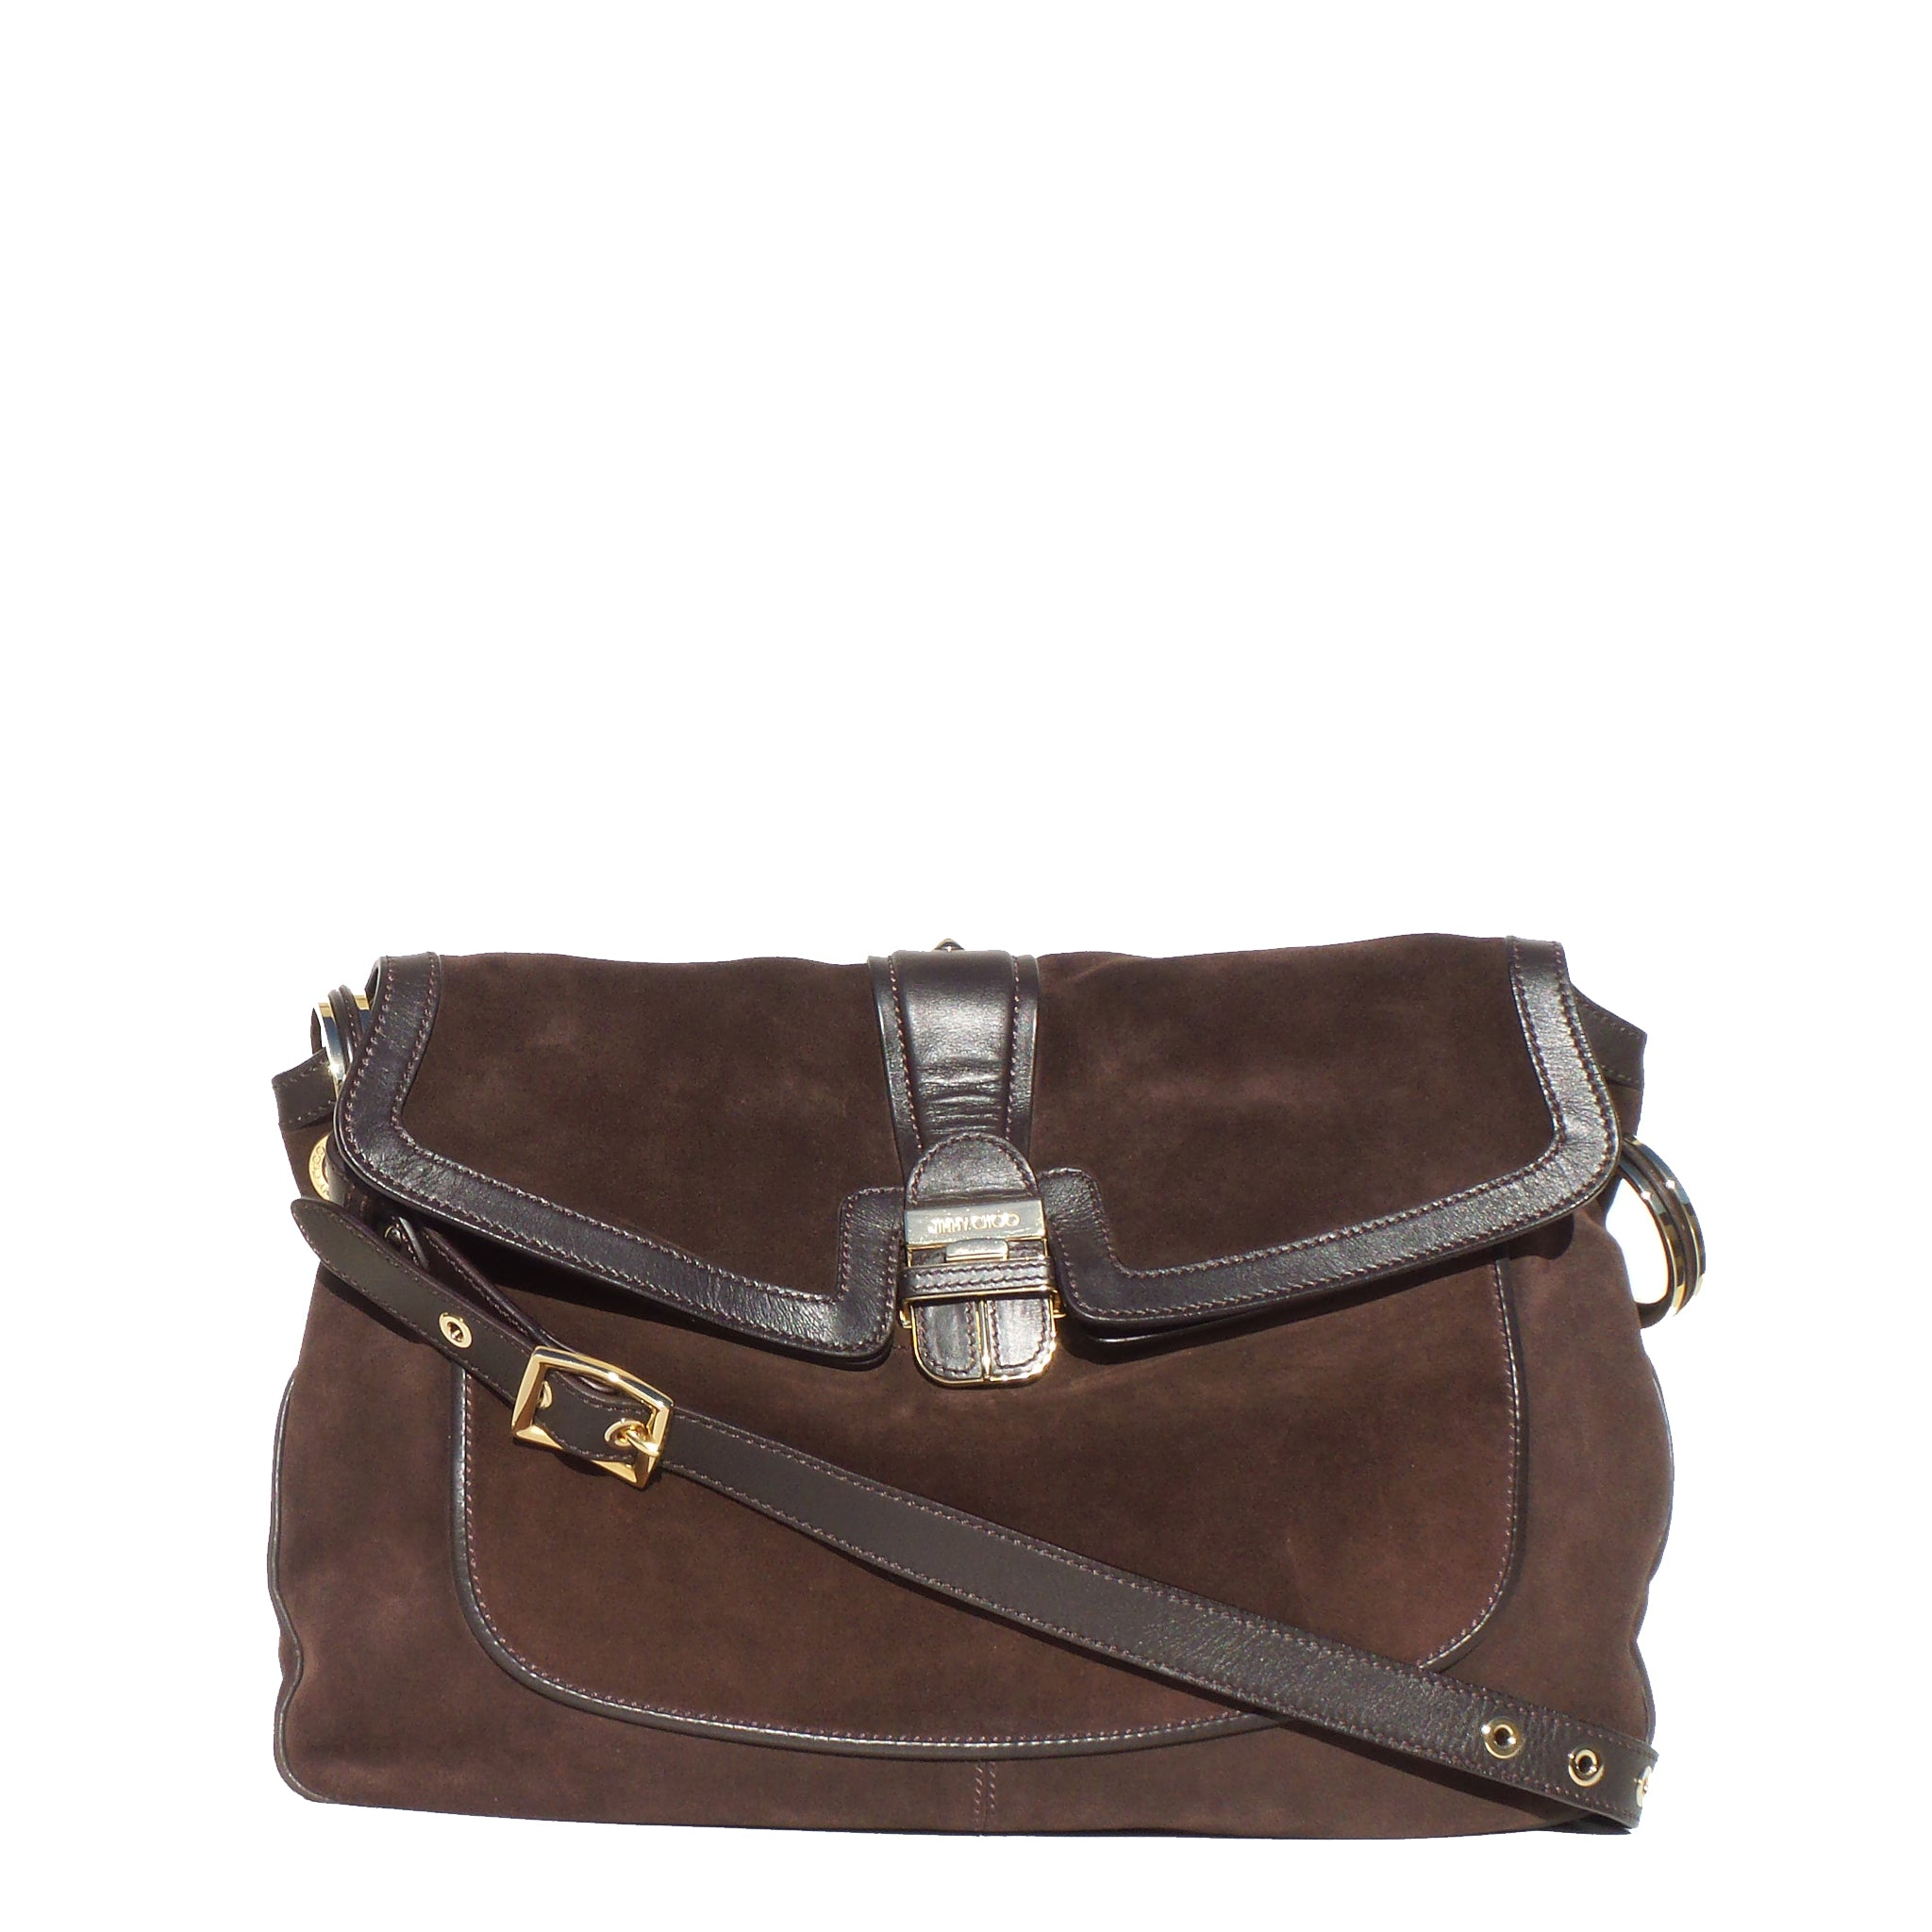 JIMMY CHOO Chocolate Brown Leather Suede Flap Saddle Bag GC